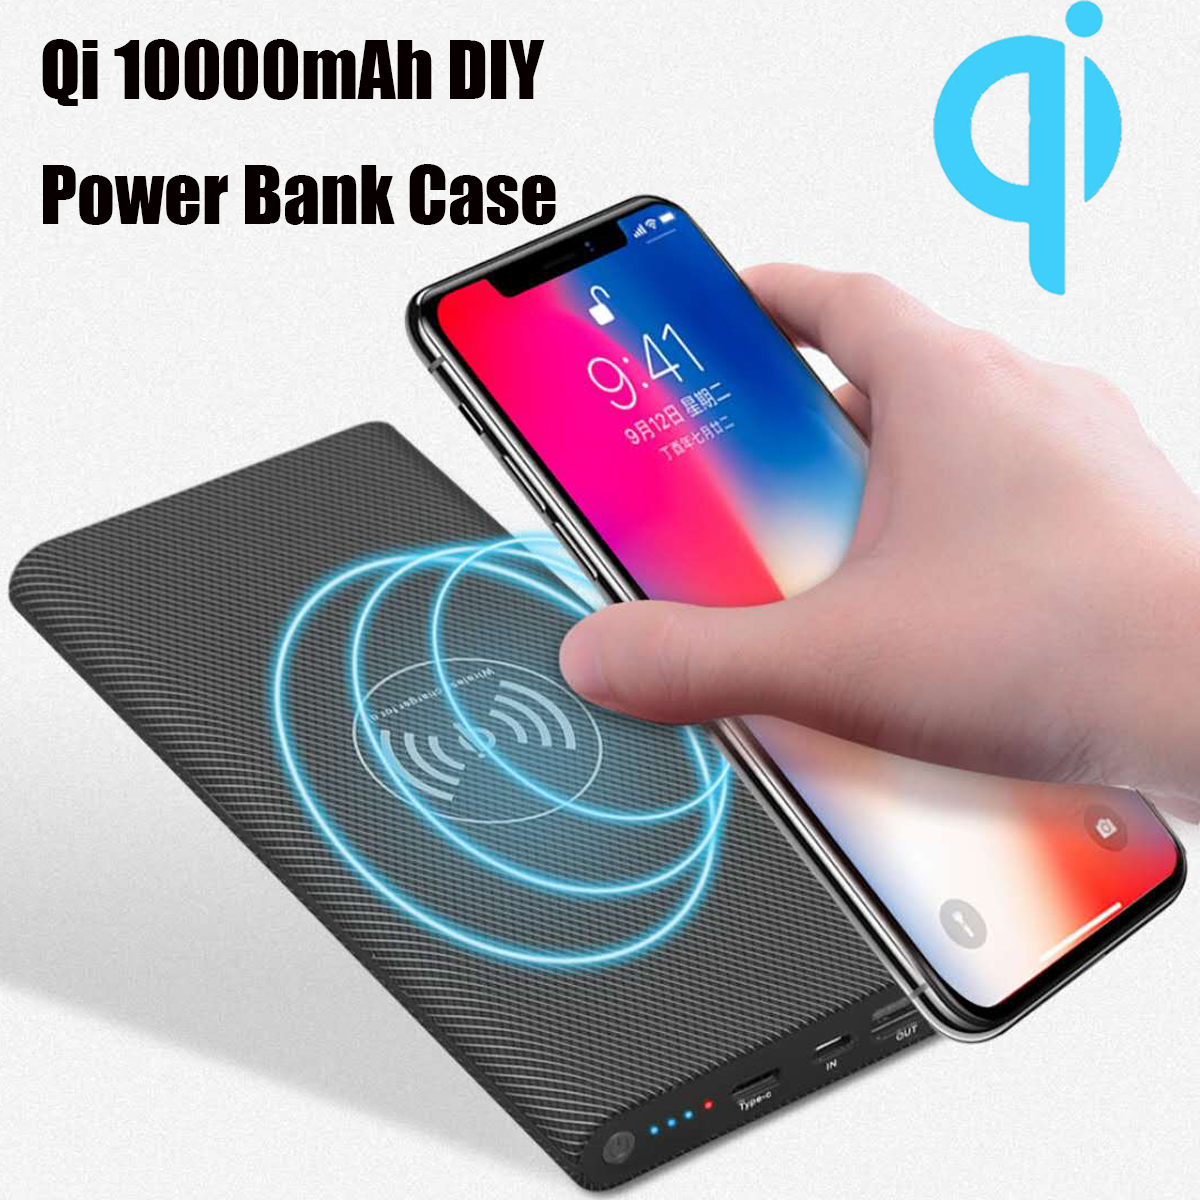 Diy Power Bank Bakeey Qi Wireless Charging Diy Power Bank Case 10000mah For Iphone X 8 S9 S8